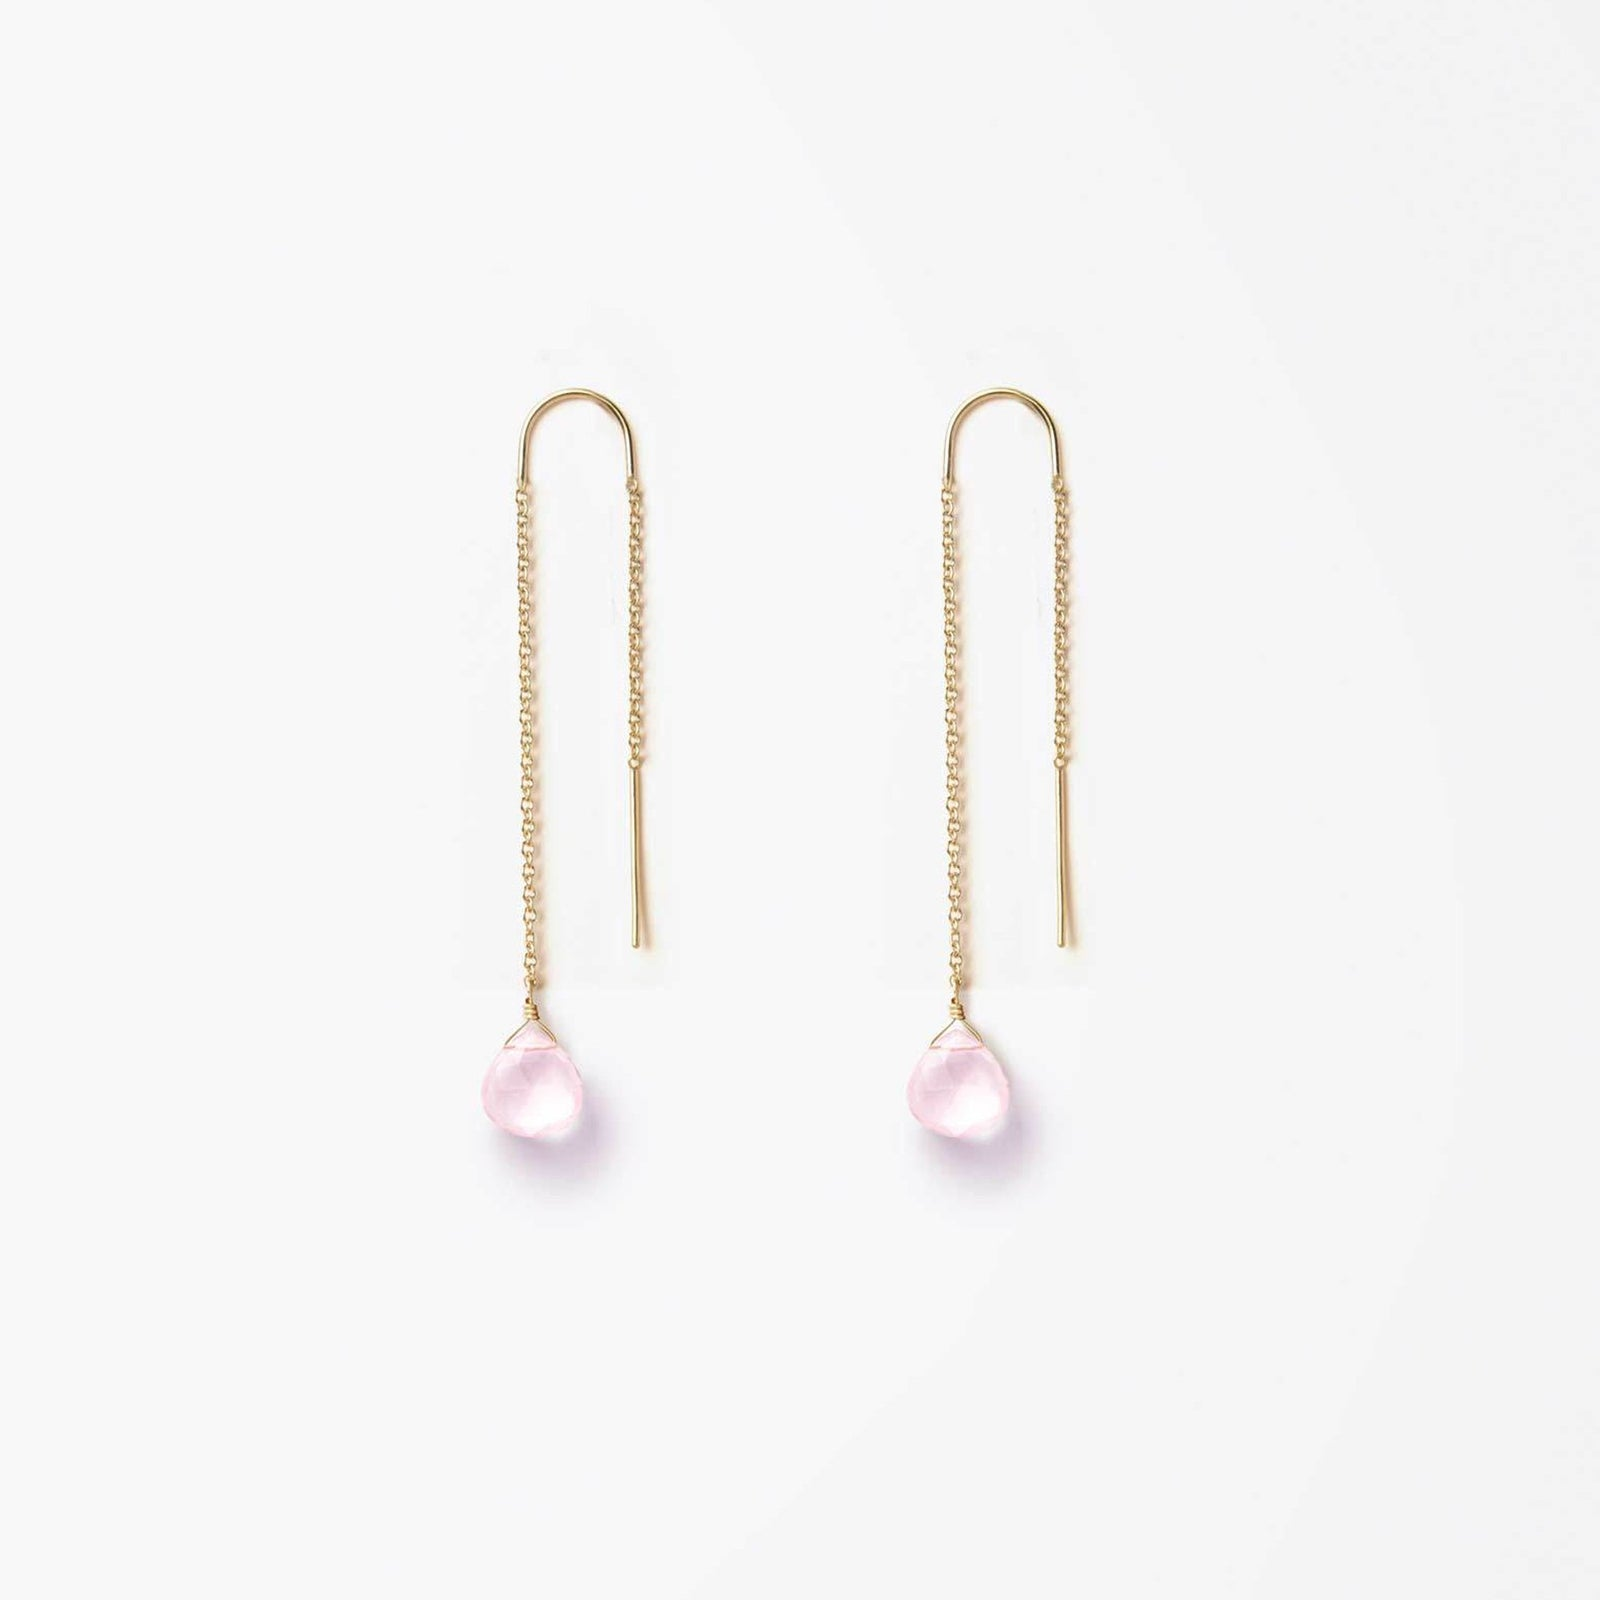 waterfall earring | rose quartz